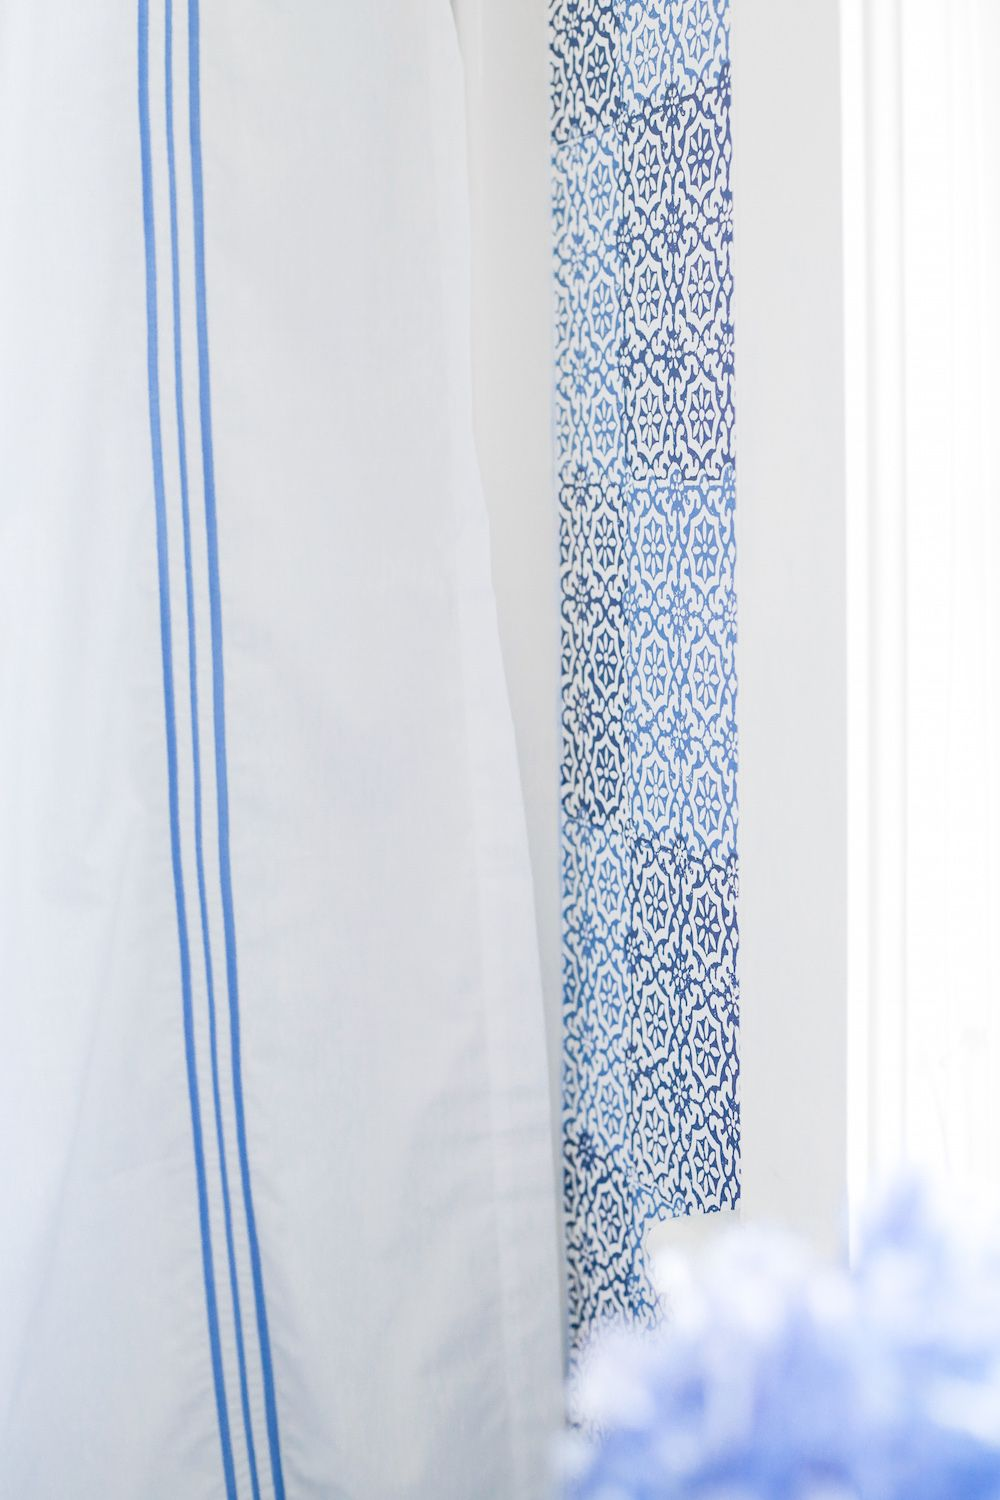 Design Darling Nantucket Bathroom Reveal Peter Fasano Sintra Wallpaper And Pine Cone Hill Trio French Blue Shower Curtain